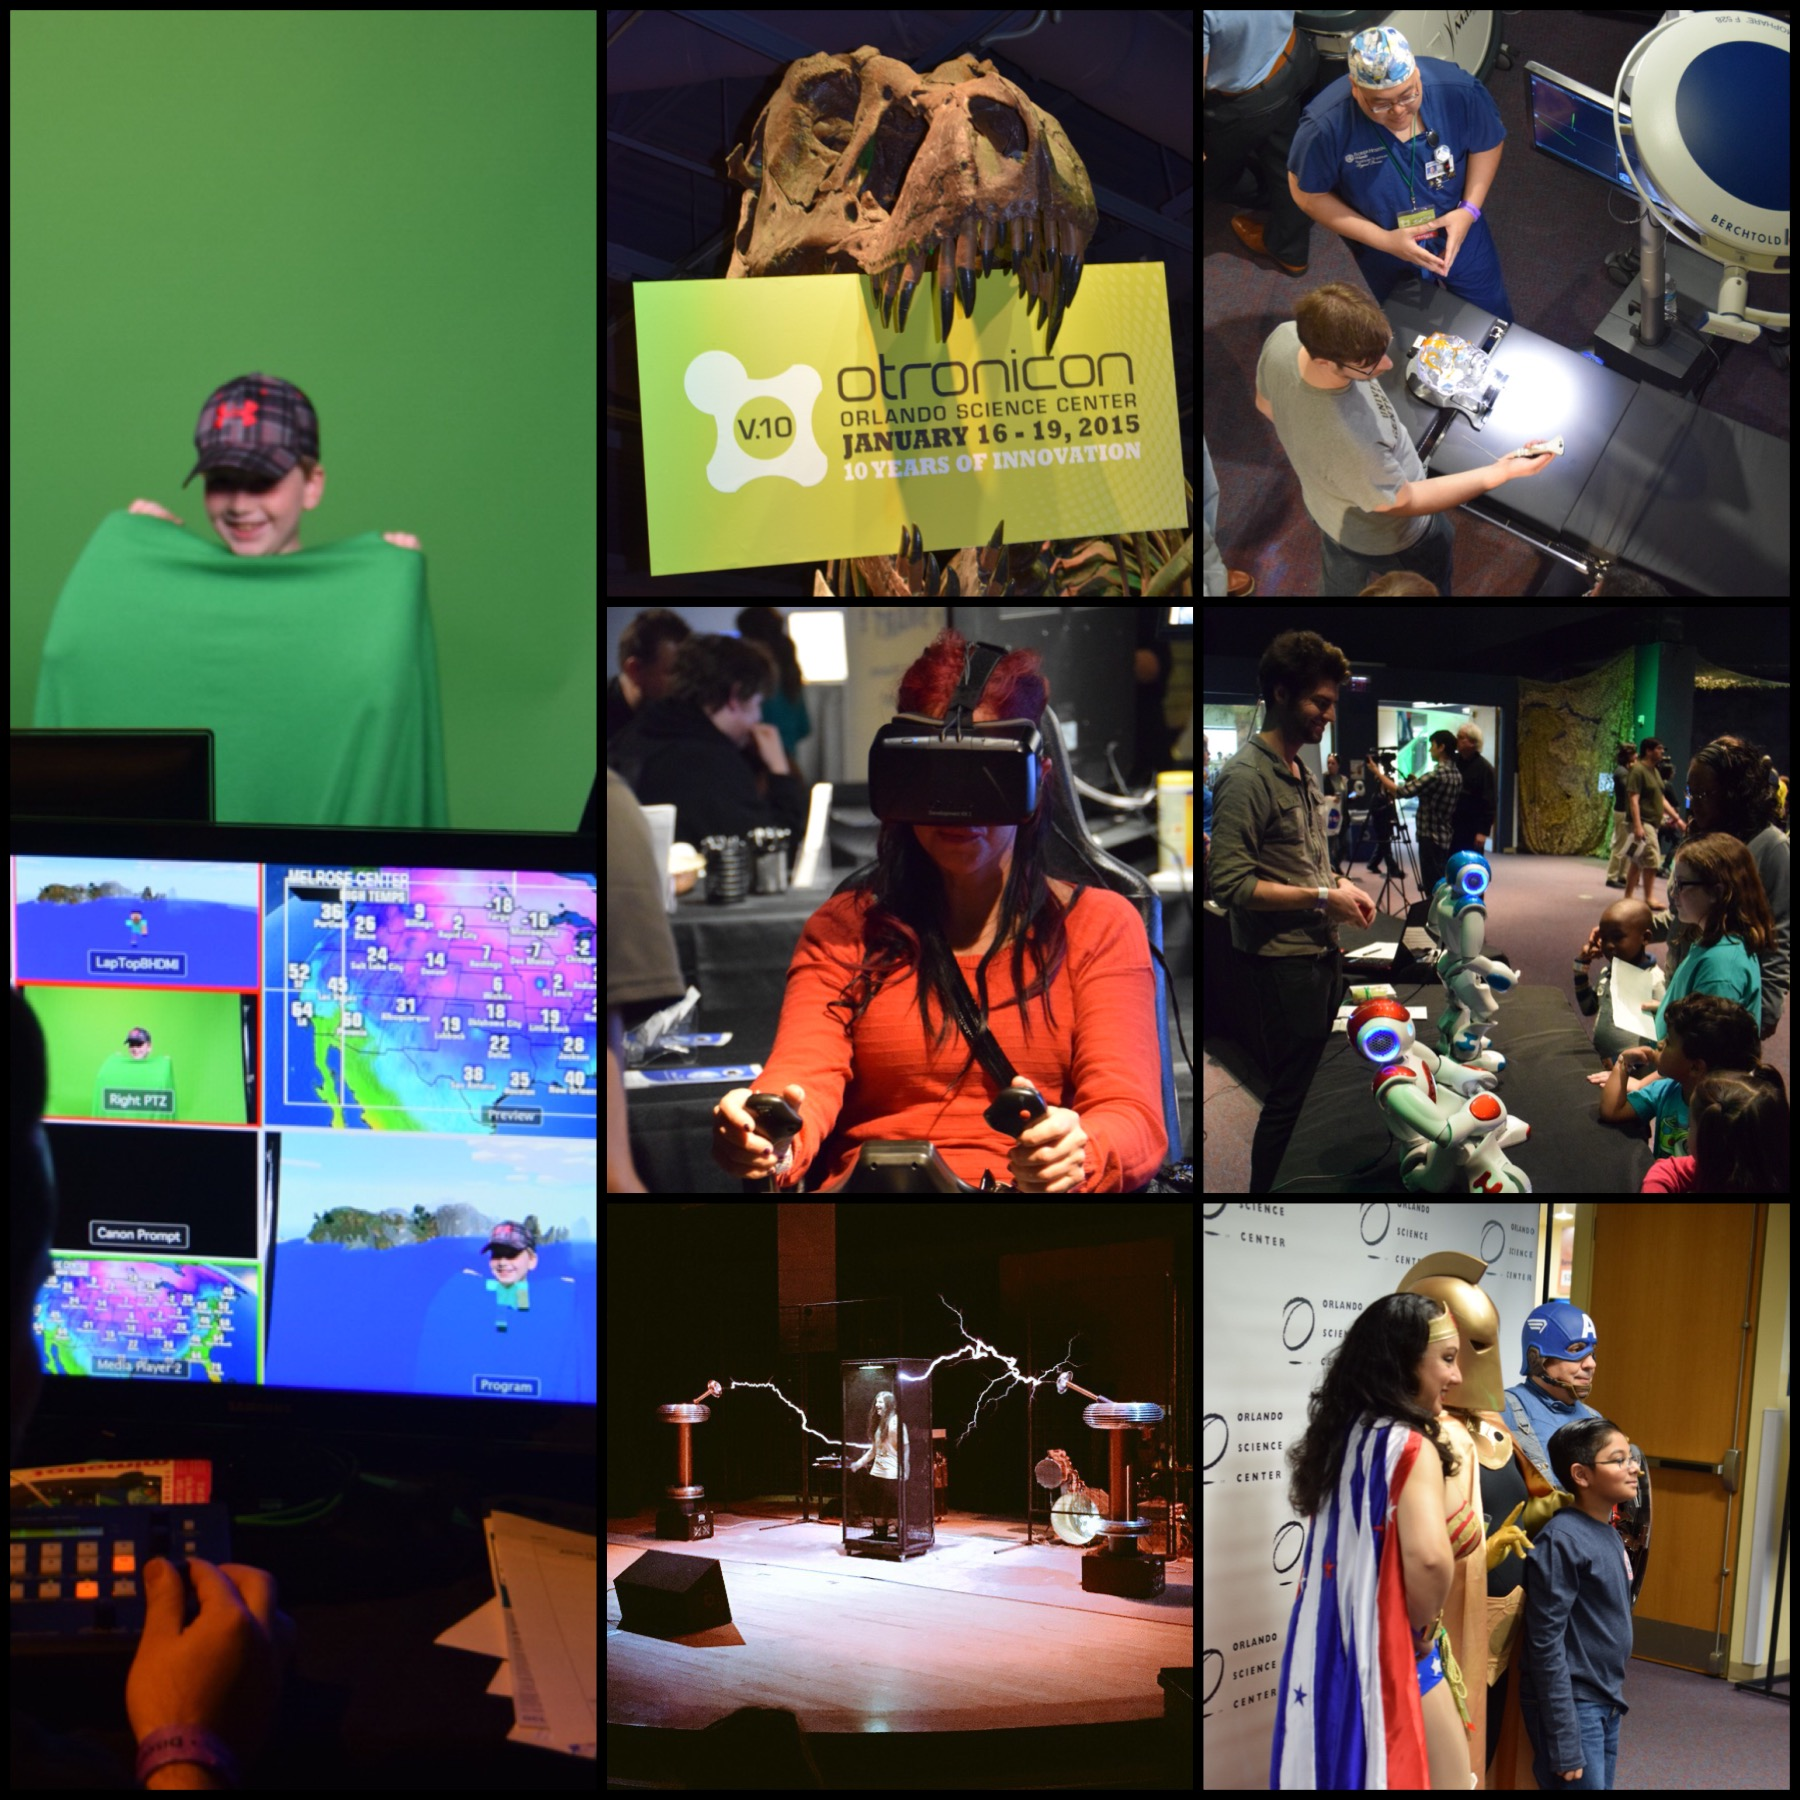 Otronicon helps to electrify the Orlando STEM community